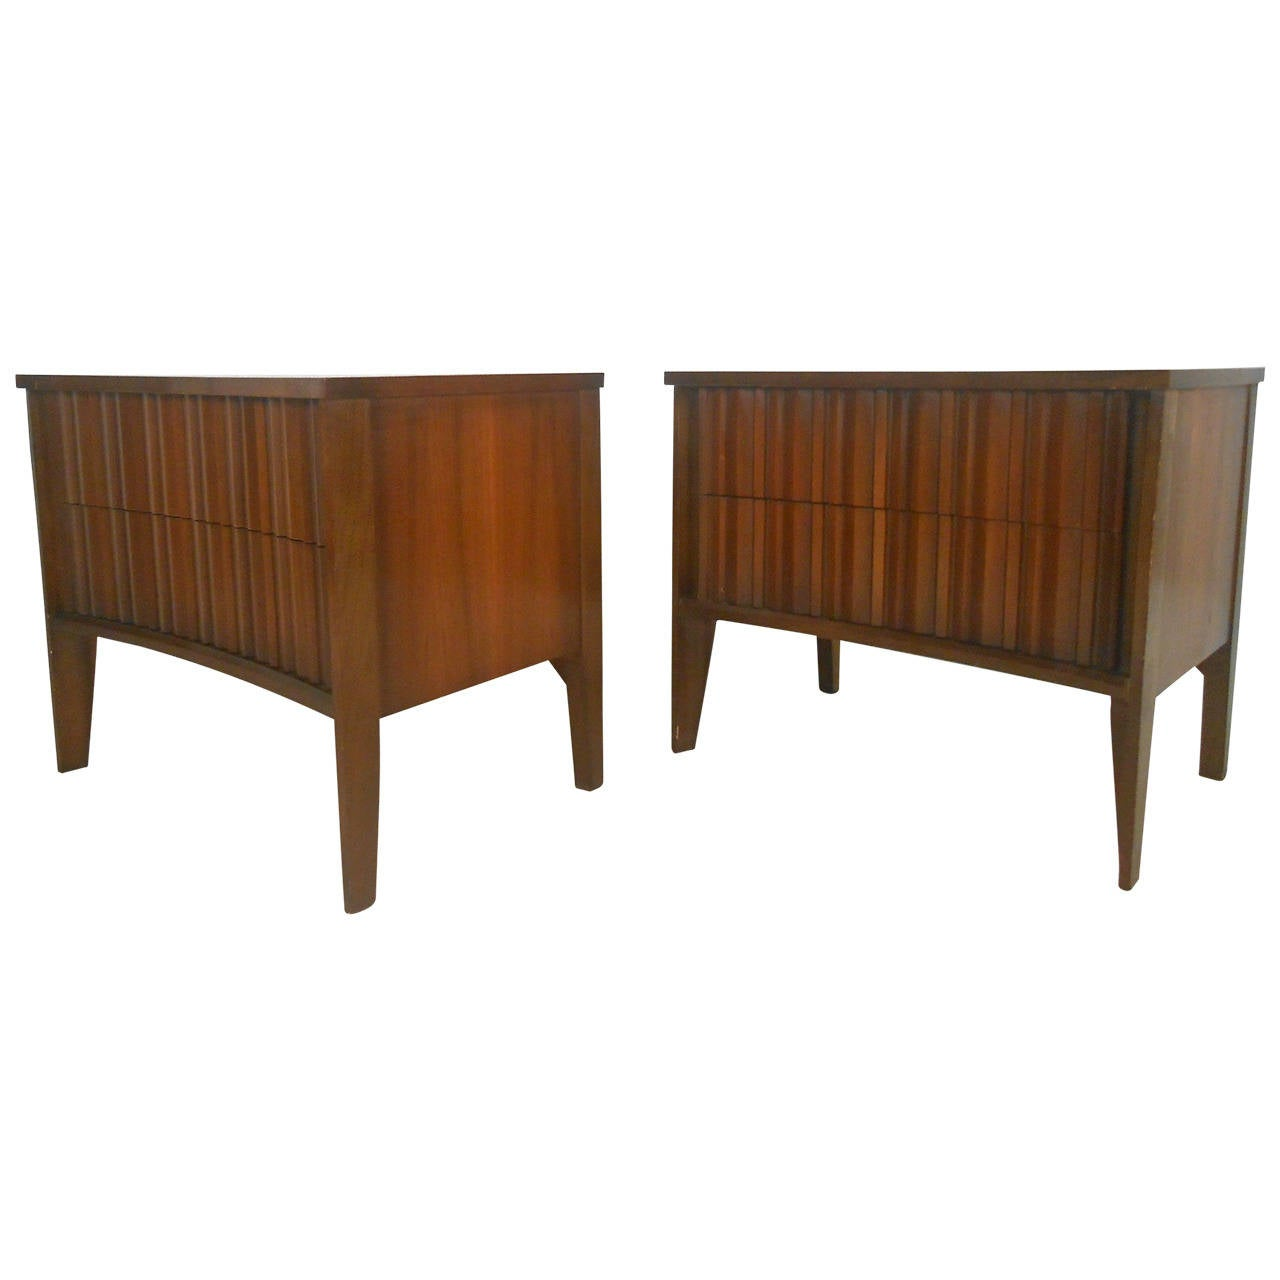 Mid century modern curved front nightstands by unagusta 1